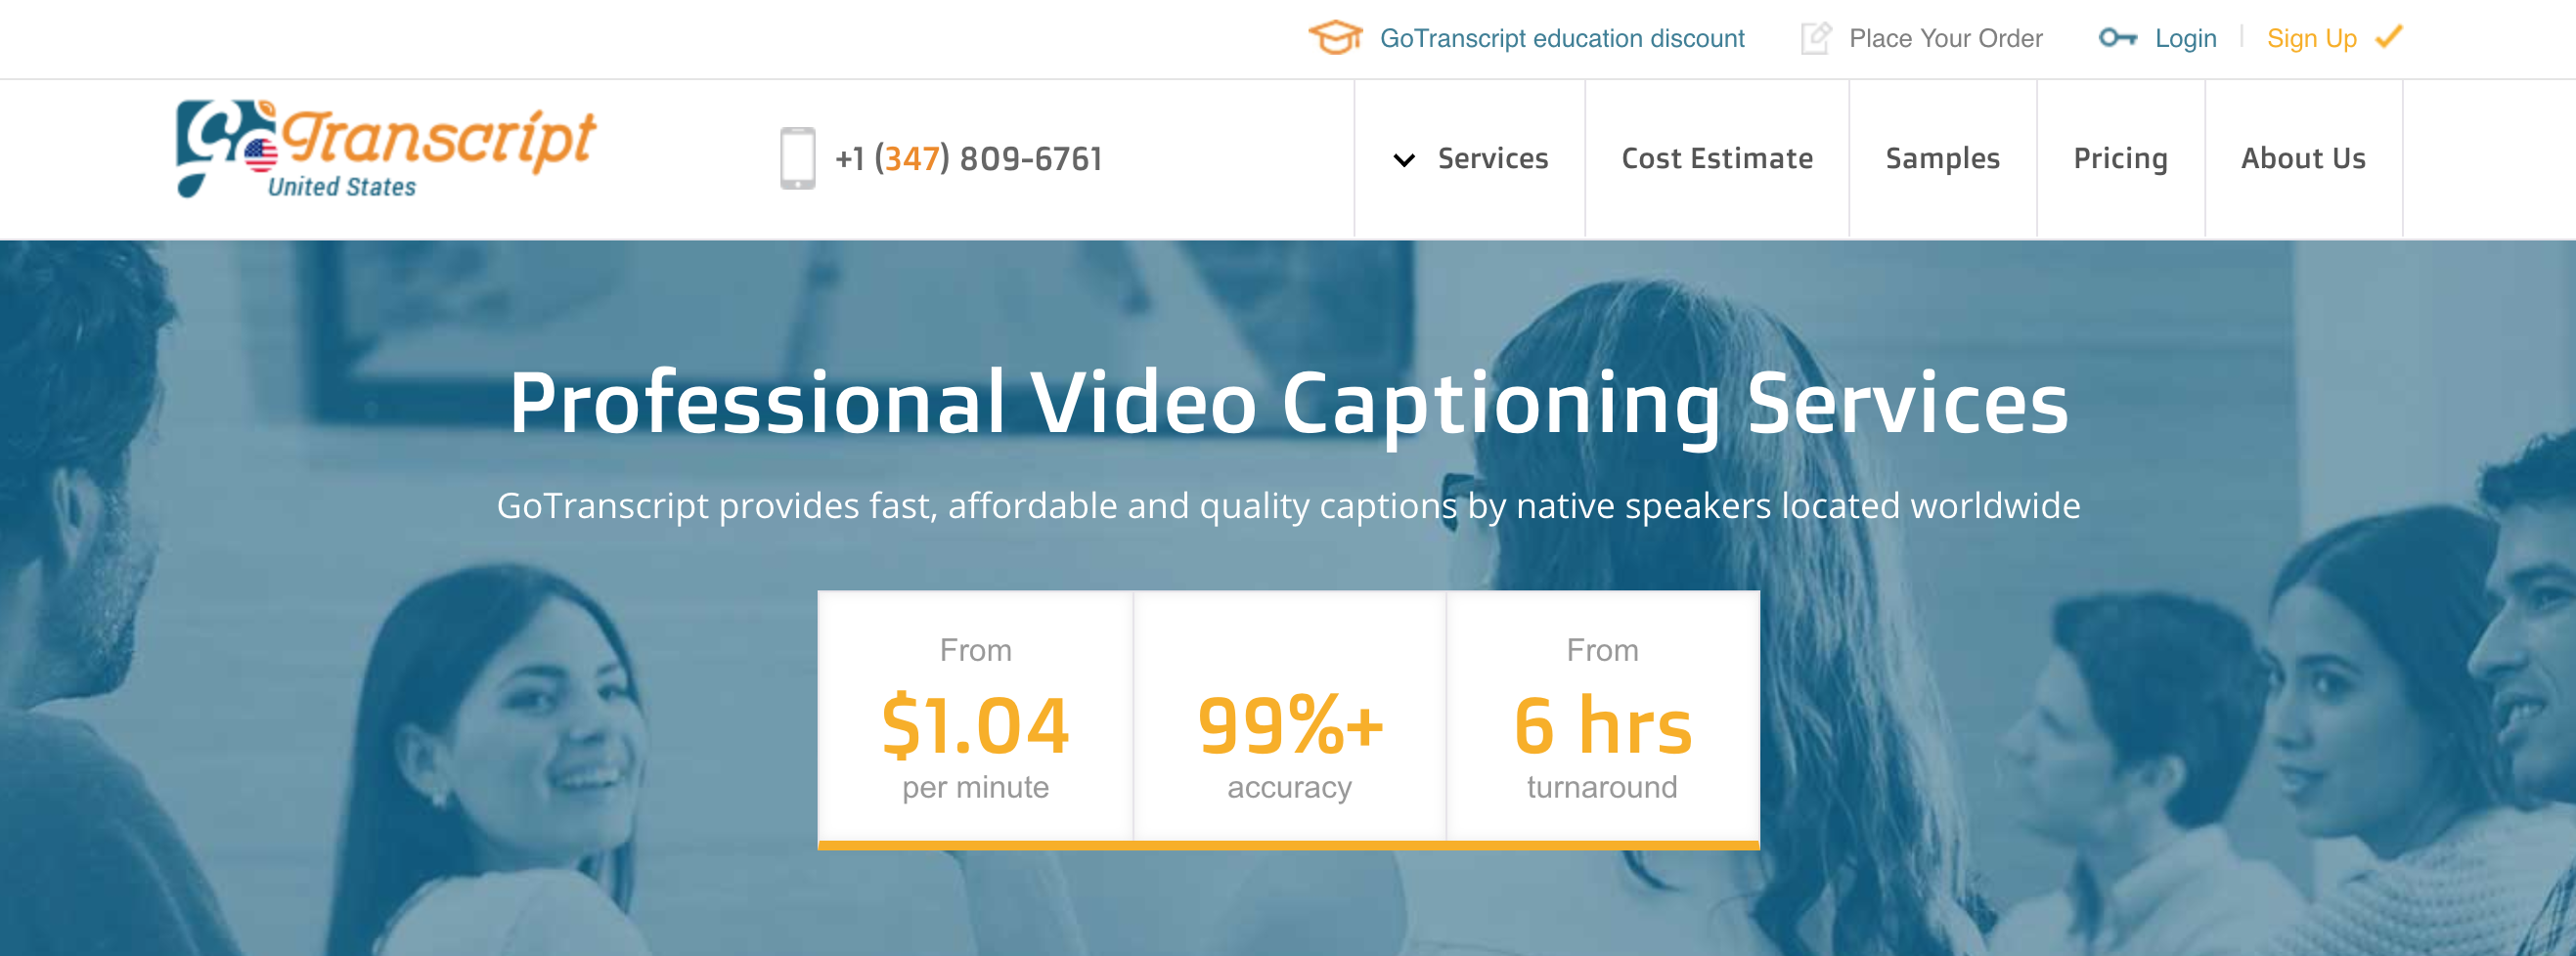 How to create a  vtt file for video captions - eCatholic